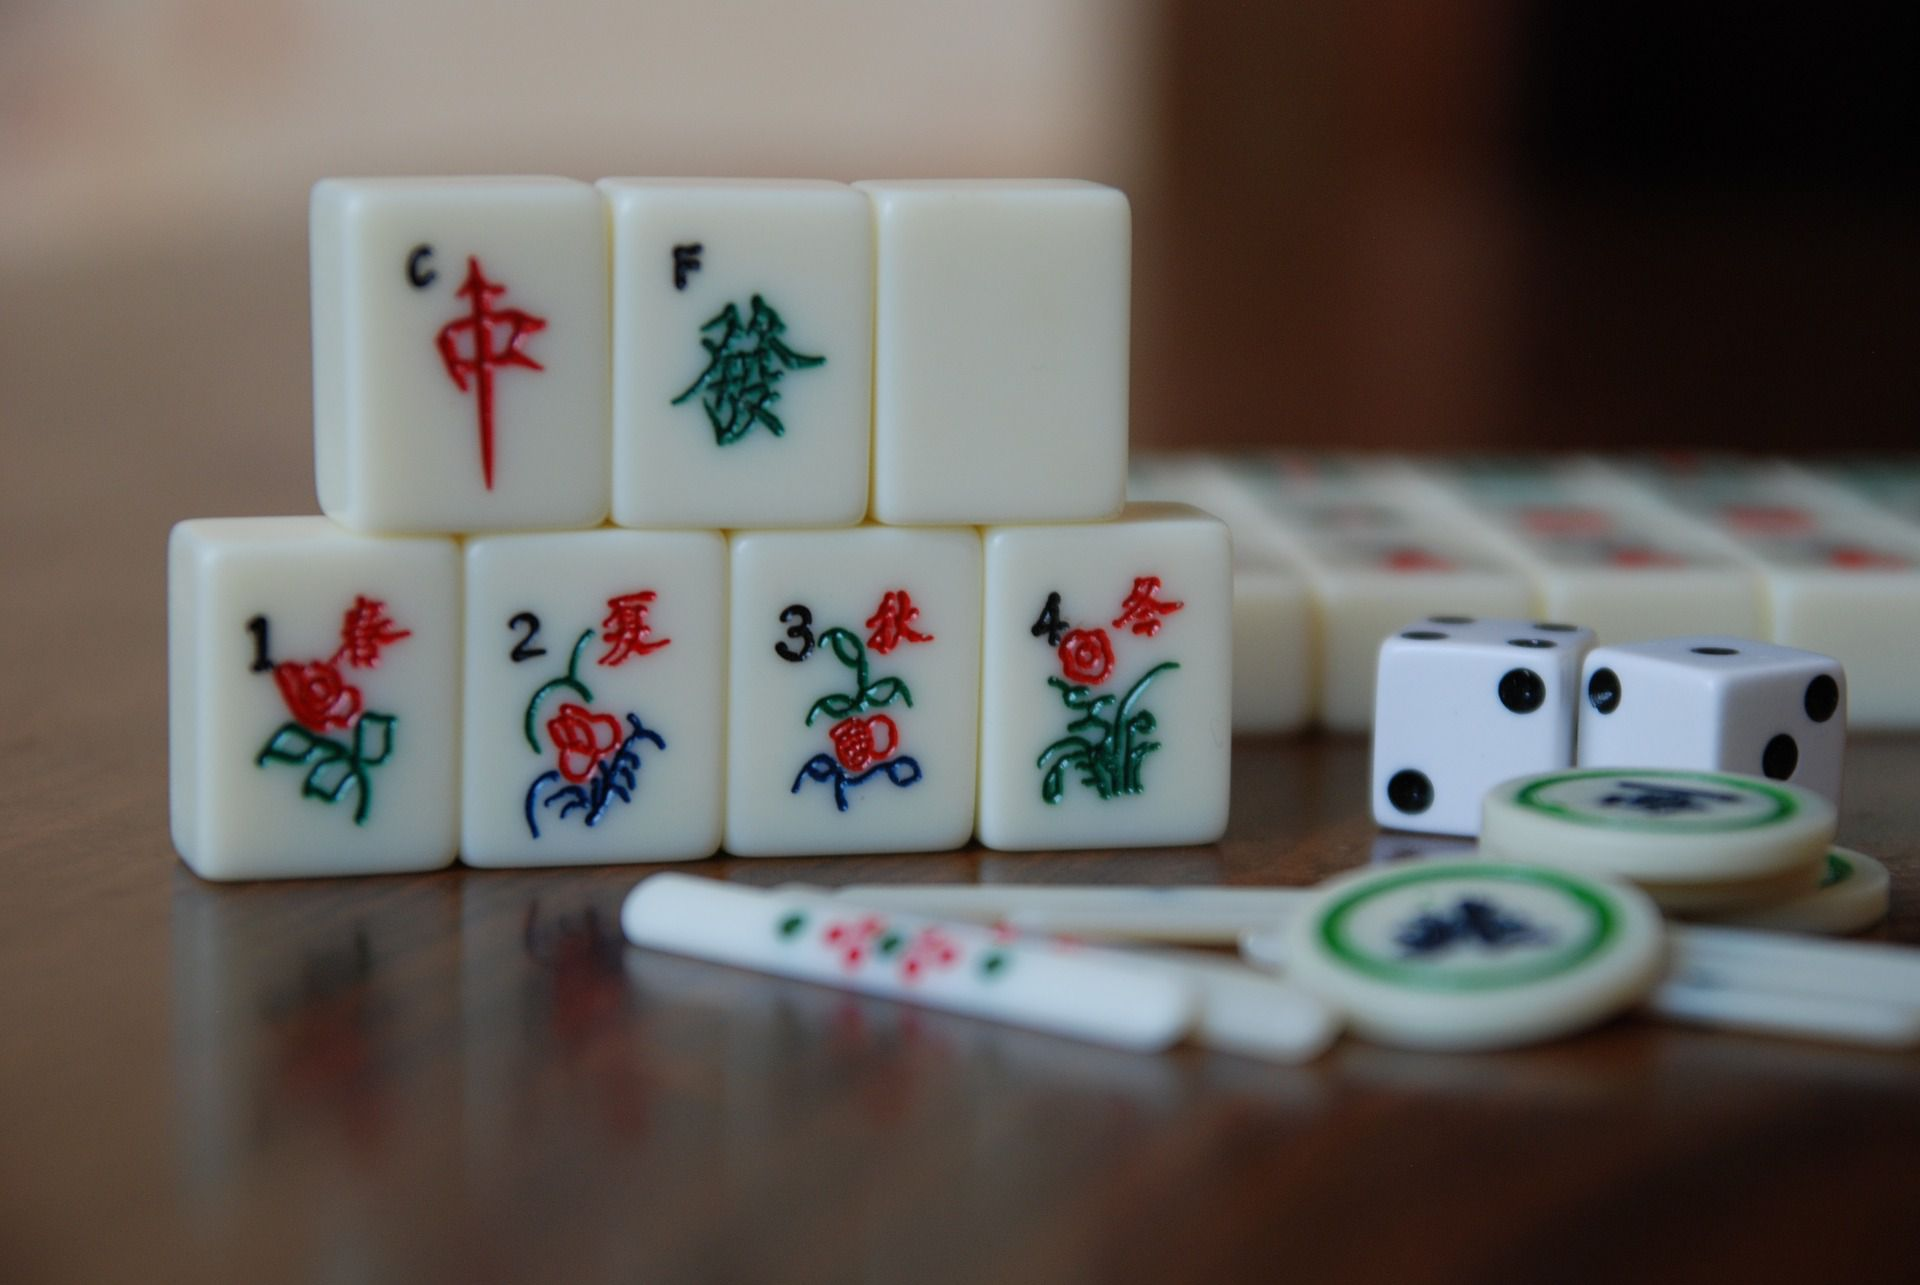 A Guide to Mahjong Tile Meanings